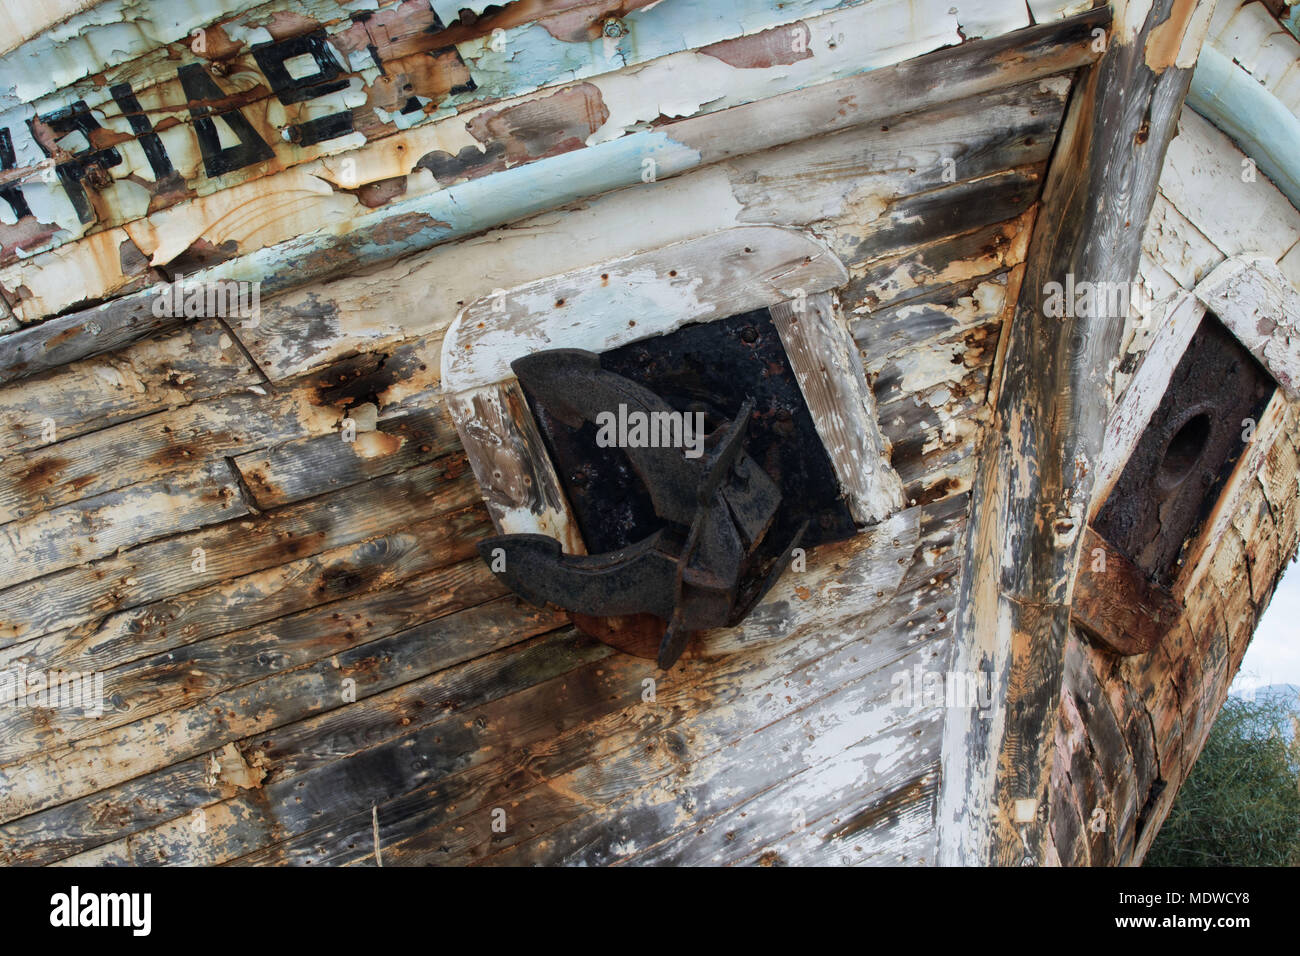 Close up of wooden boat in dry dock showing colourful peeling paint, Polis, Cyprus - Stock Image